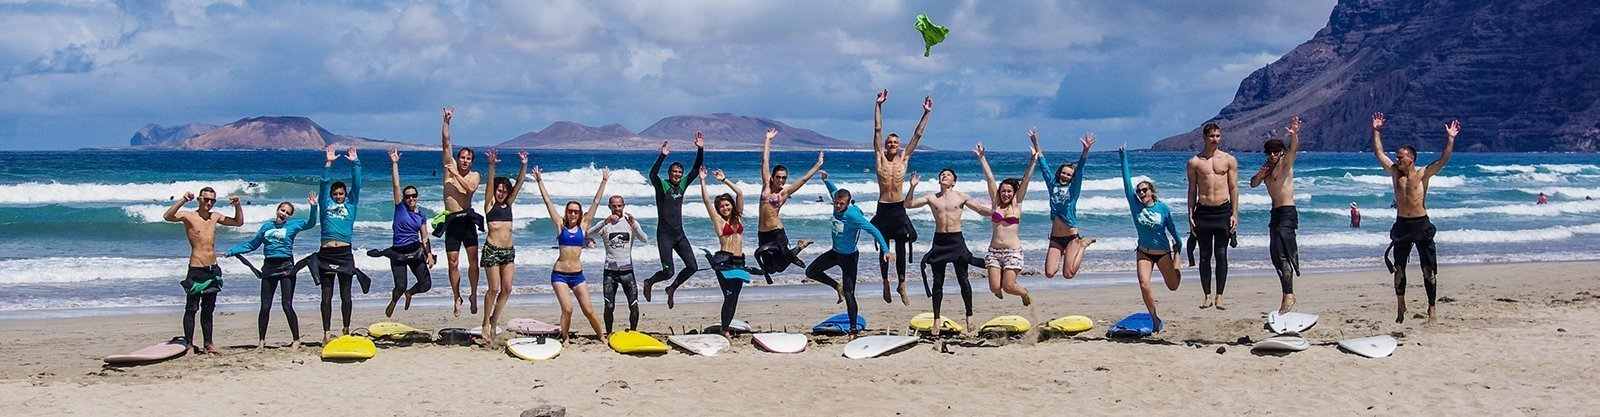 group surfing lessons with surf school and surf camp on the beach playa famara lanzarote redstarsurf accommodation and surf lessons escuela de surf in canary islands surf camp ecole de surf серф школа серф-кемп серф-лагерь